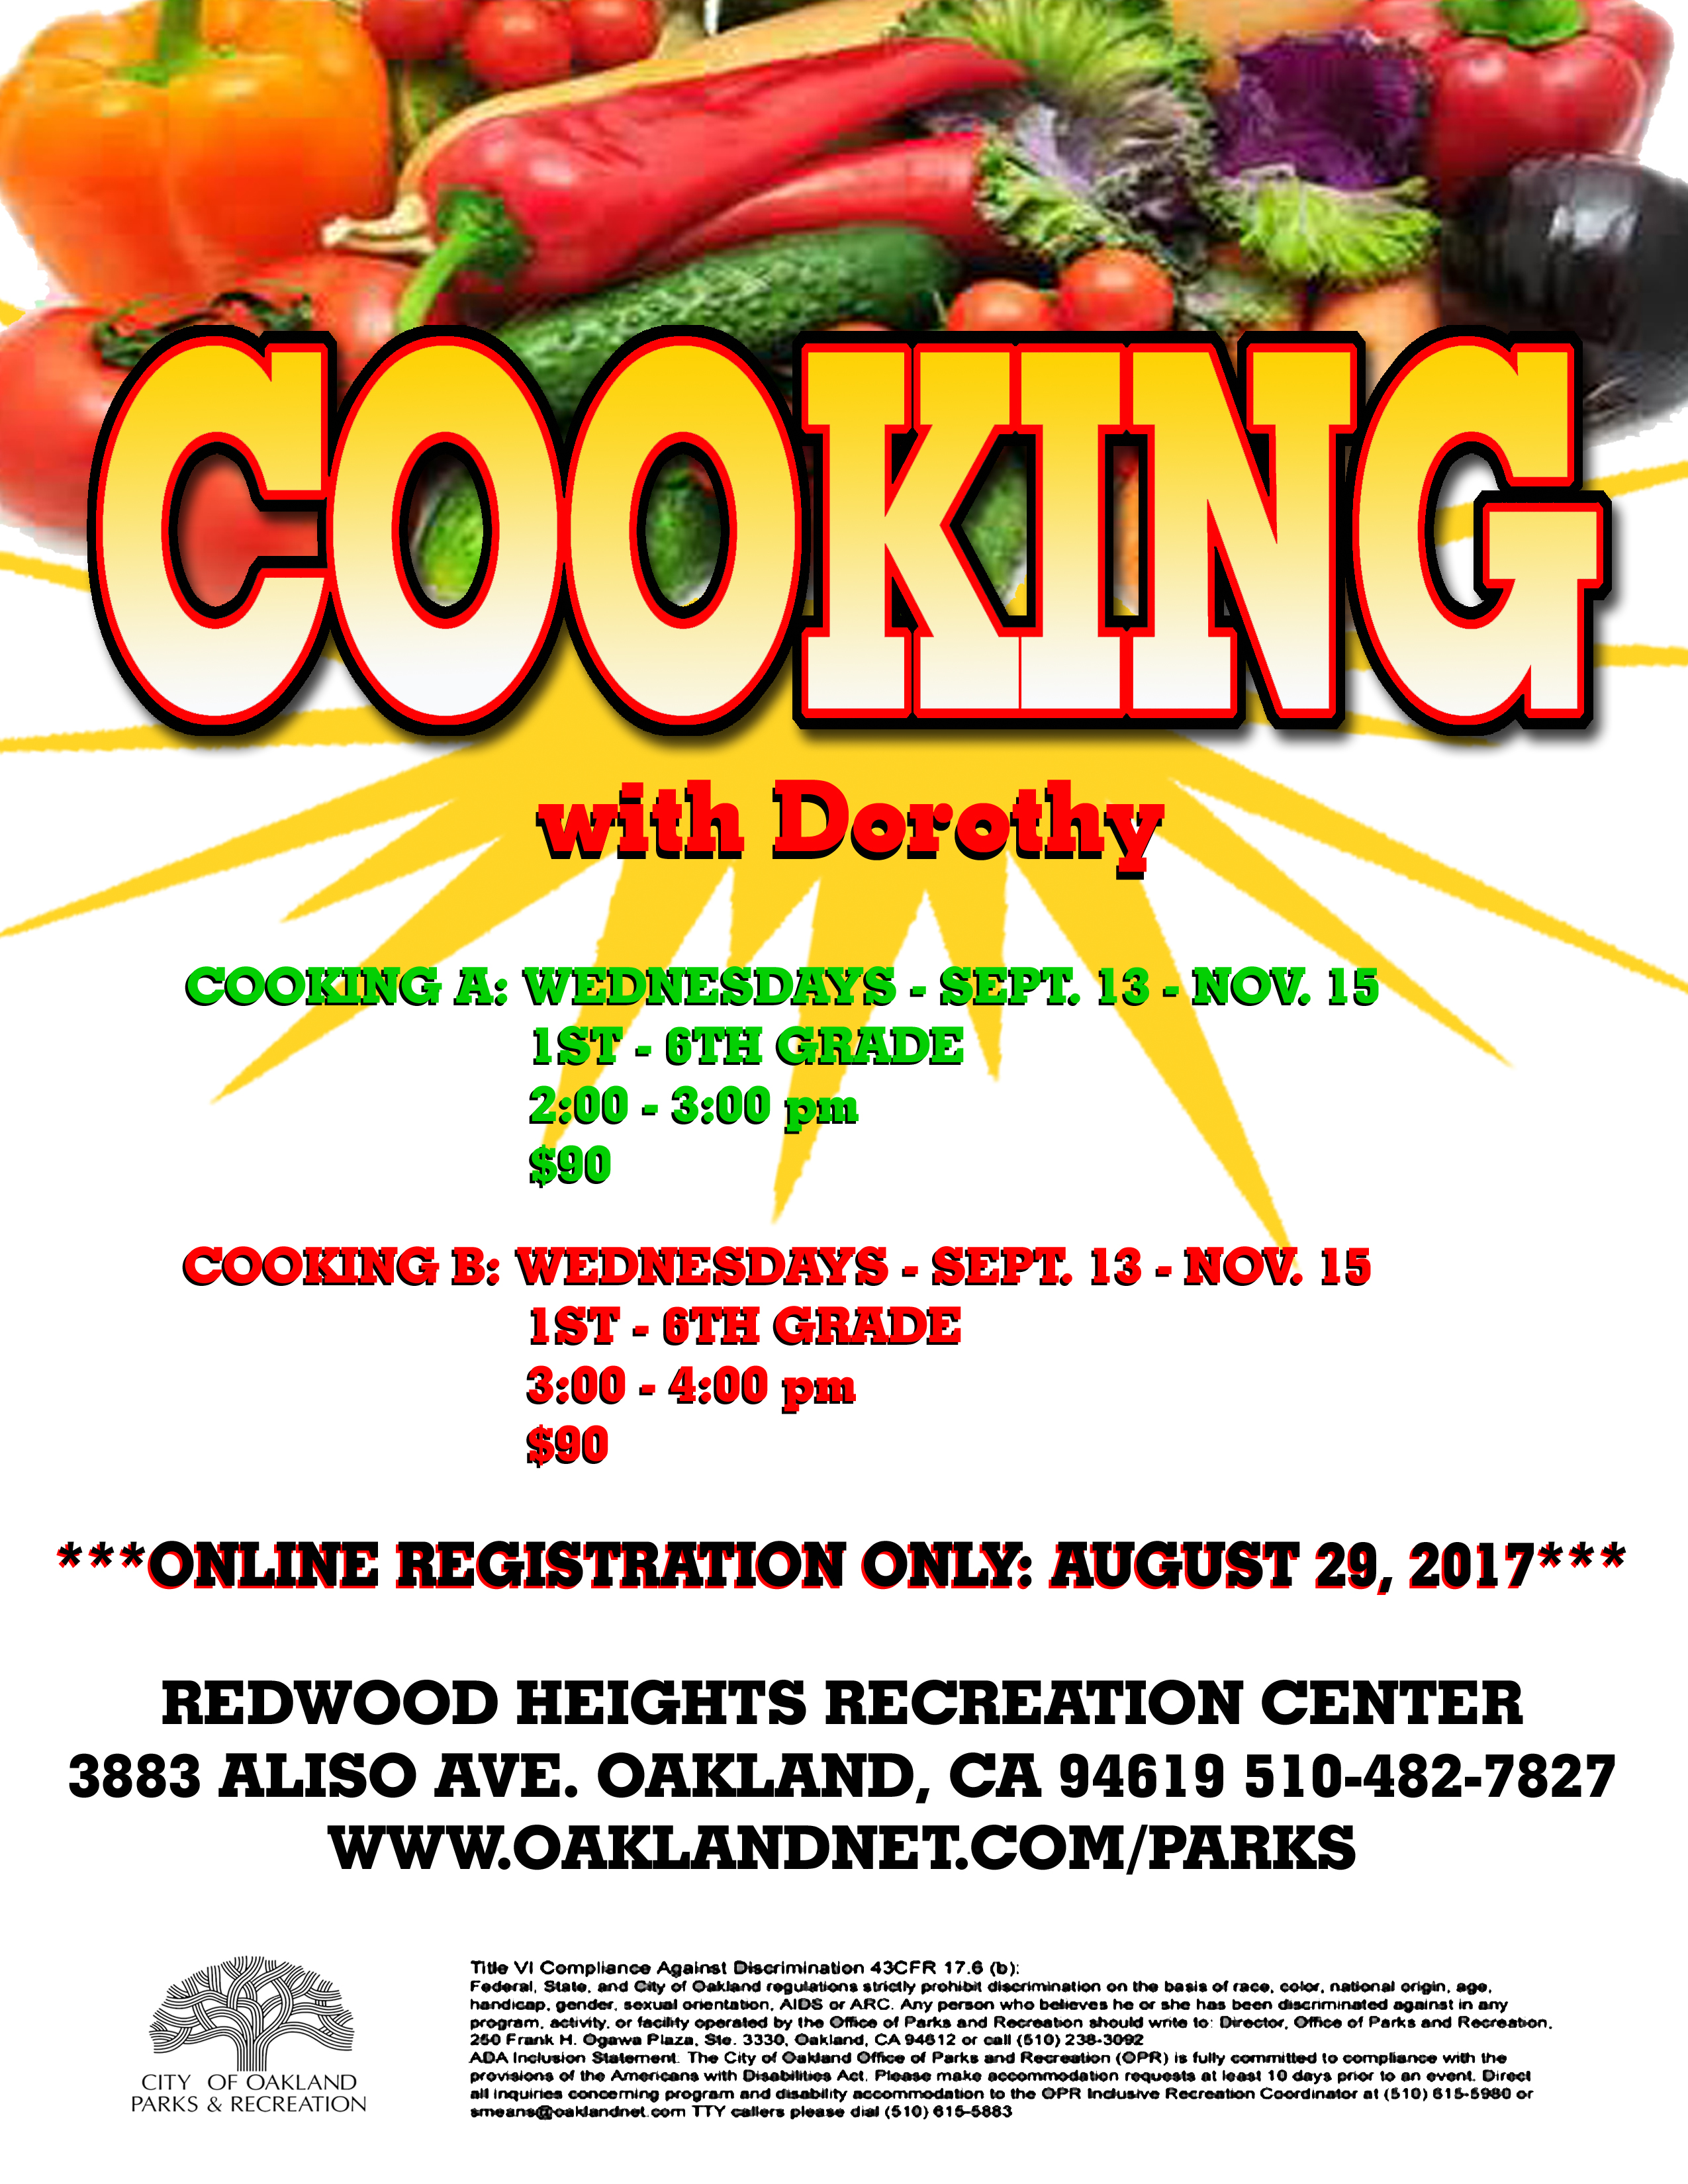 Cooking at Redwood Heights Recreation Center